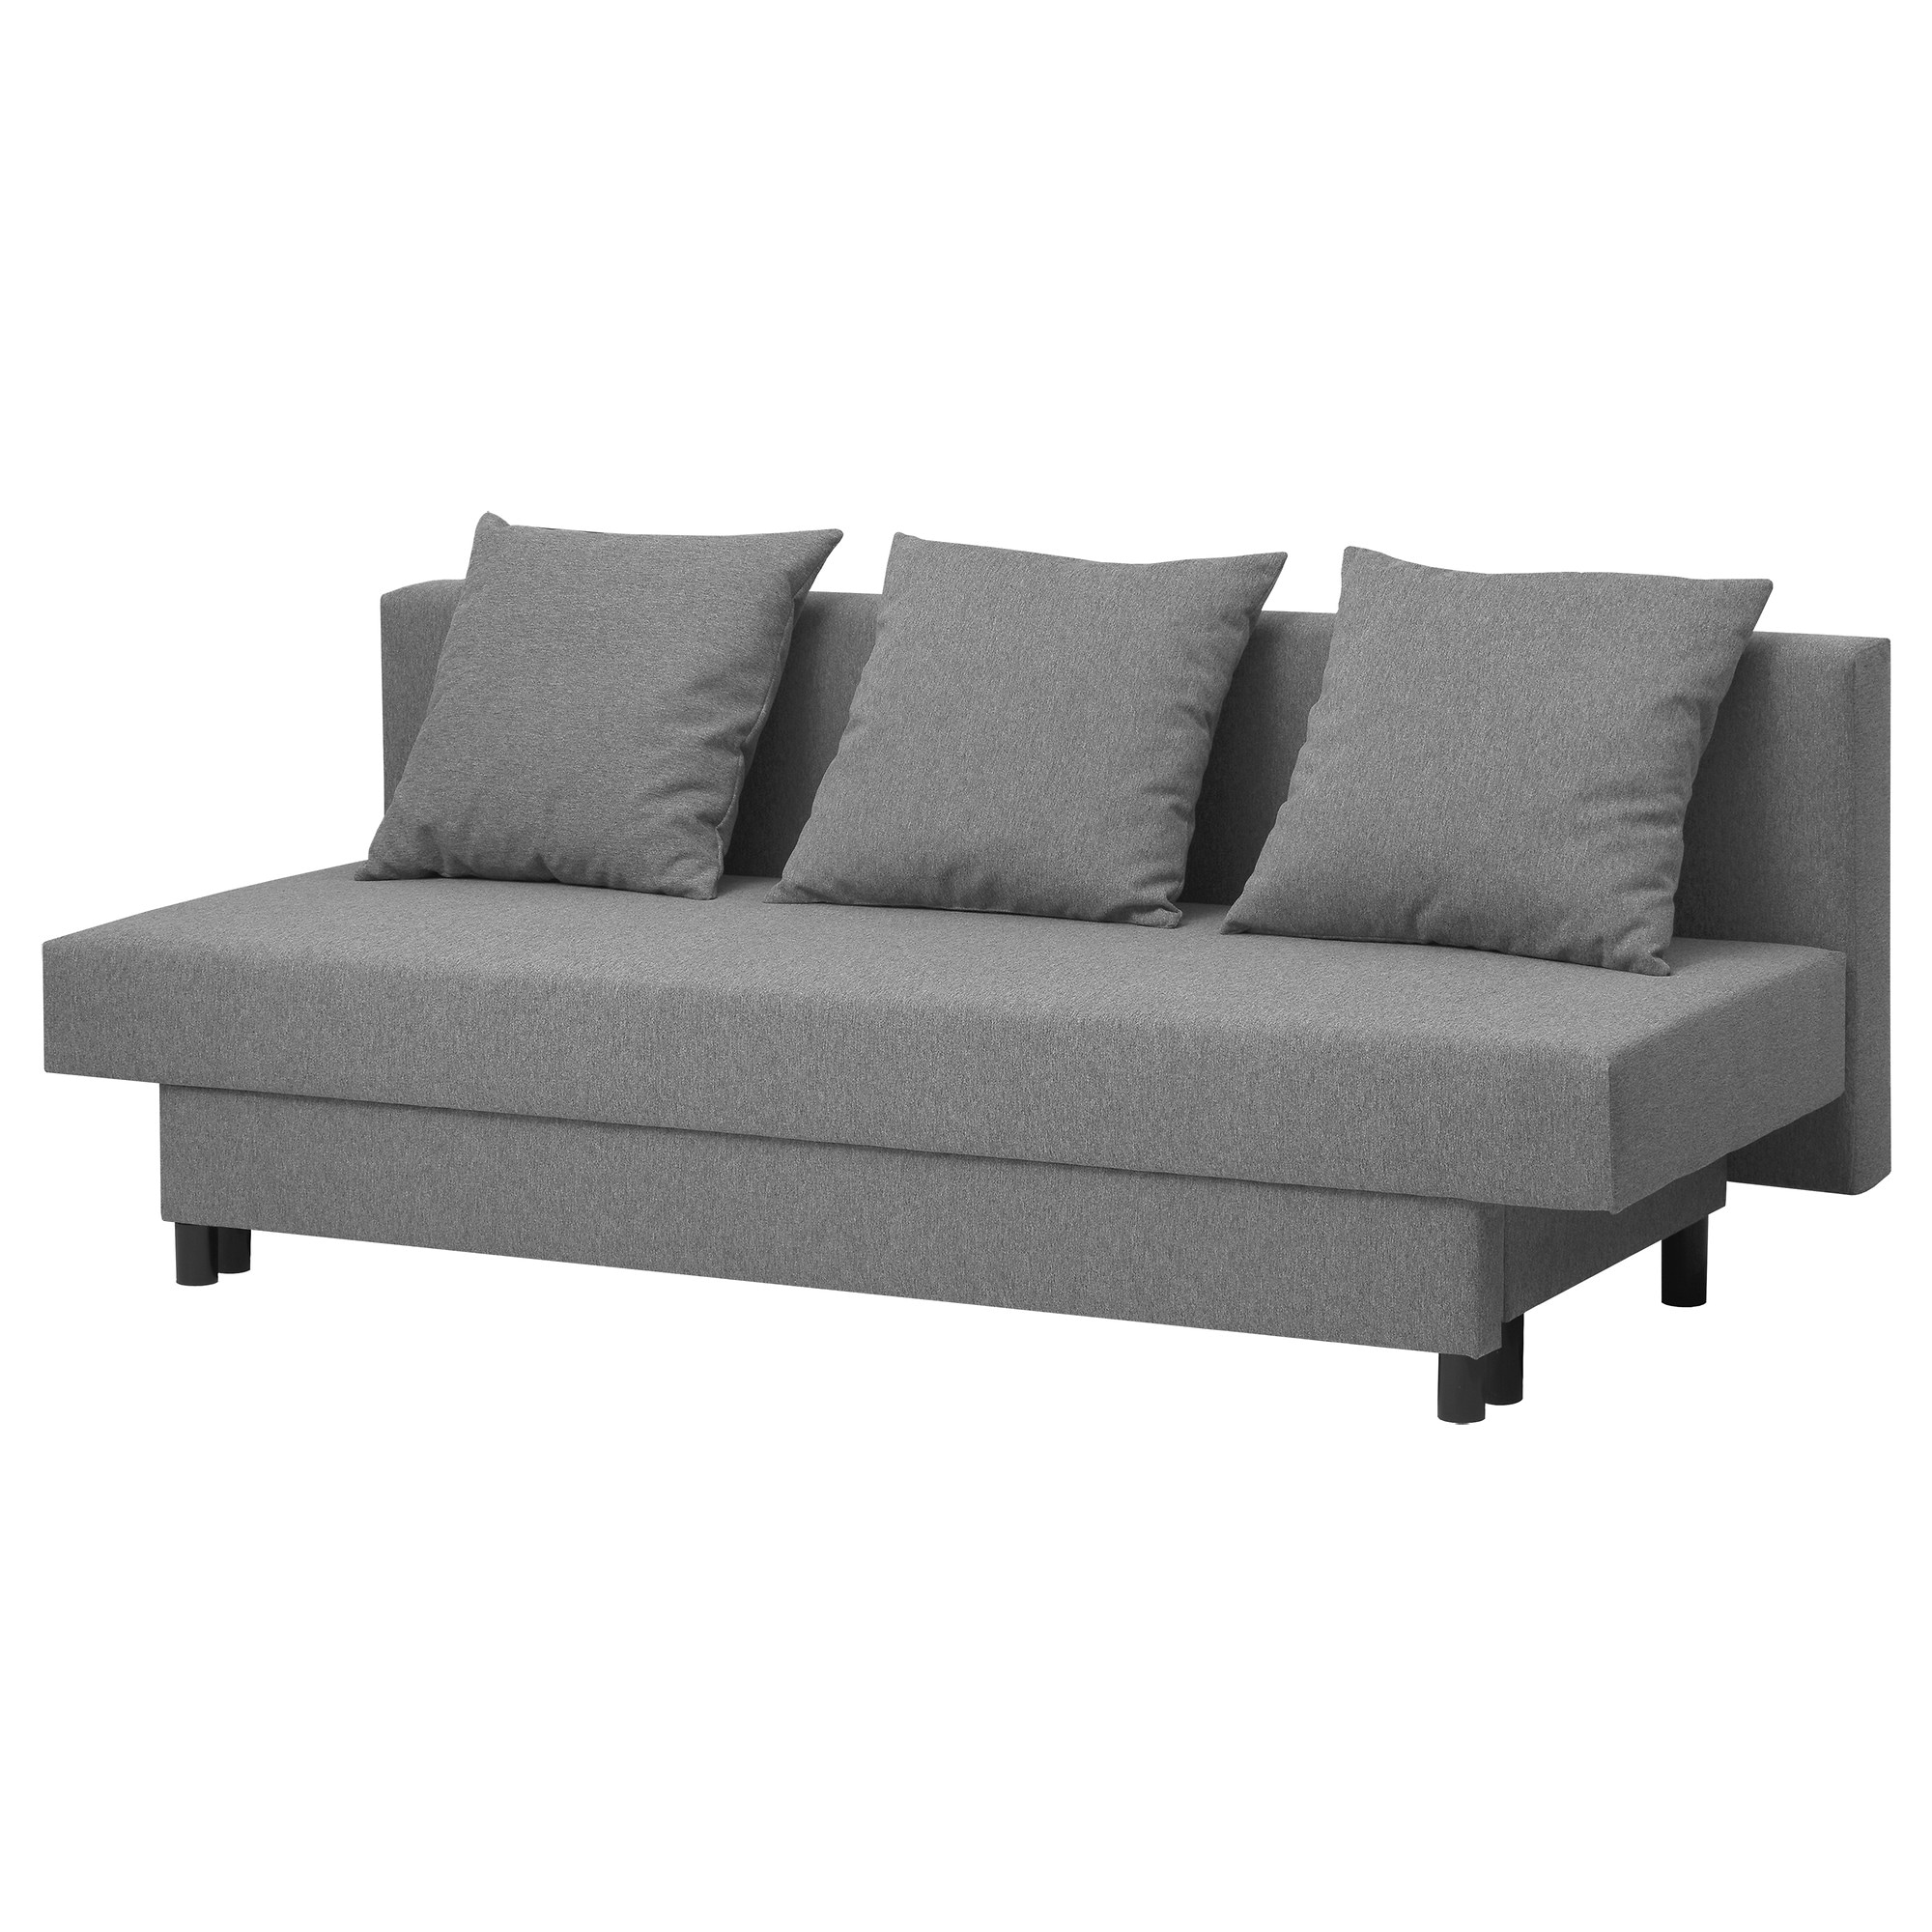 Schlafsofa ikea  ASARUM Three-seat sofa-bed - IKEA